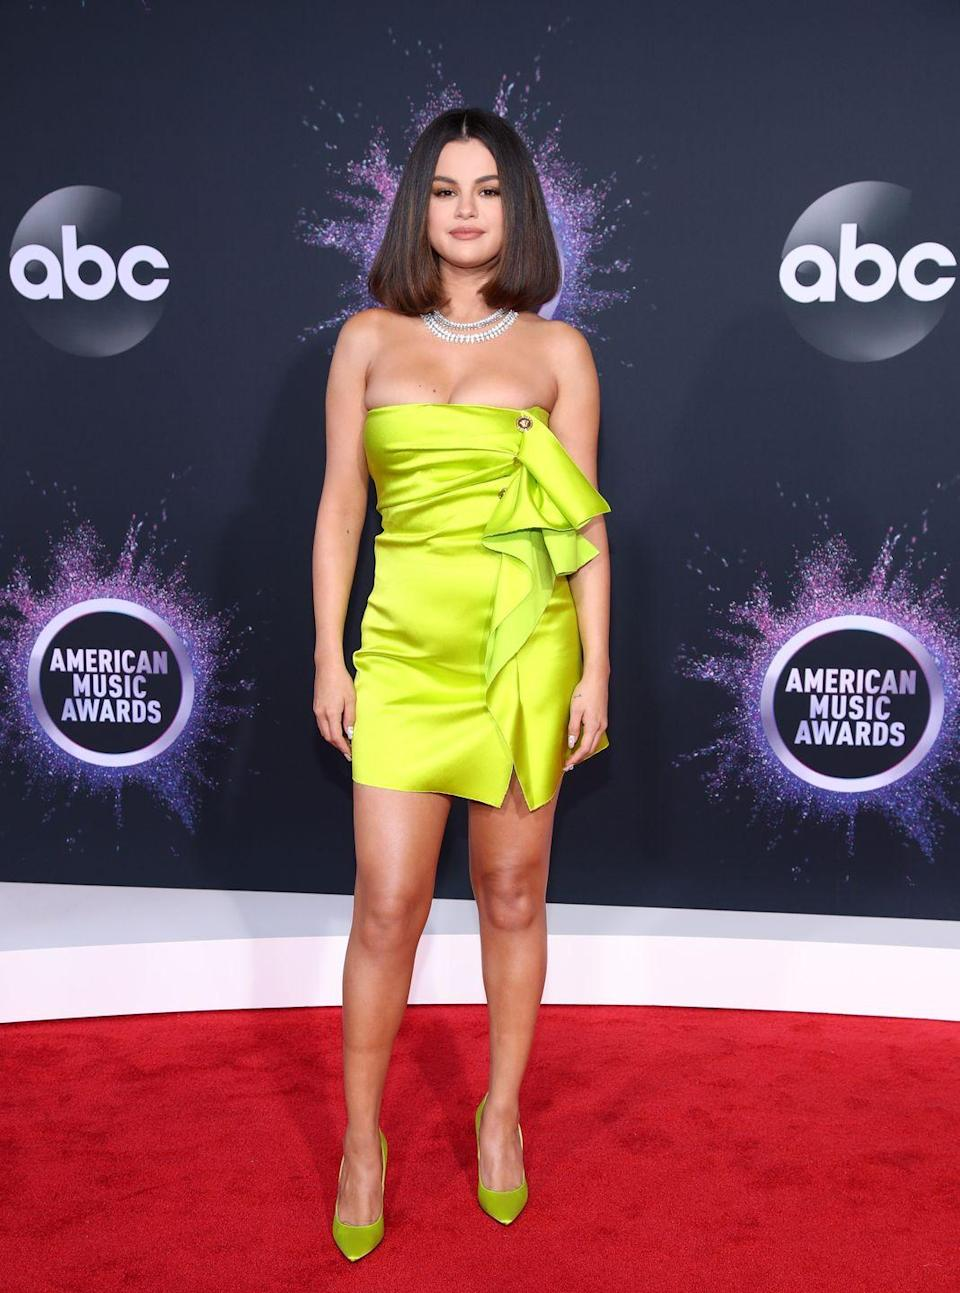 "<p>Attending the 2019 American Music Awards in Los Angeles in a <a href=""https://www.elle.com/culture/celebrities/a29802535/selena-gomez-dress-american-music-awards-2019/"" rel=""nofollow noopener"" target=""_blank"" data-ylk=""slk:strapless Versace"" class=""link rapid-noclick-resp"">strapless Versace</a>.</p>"